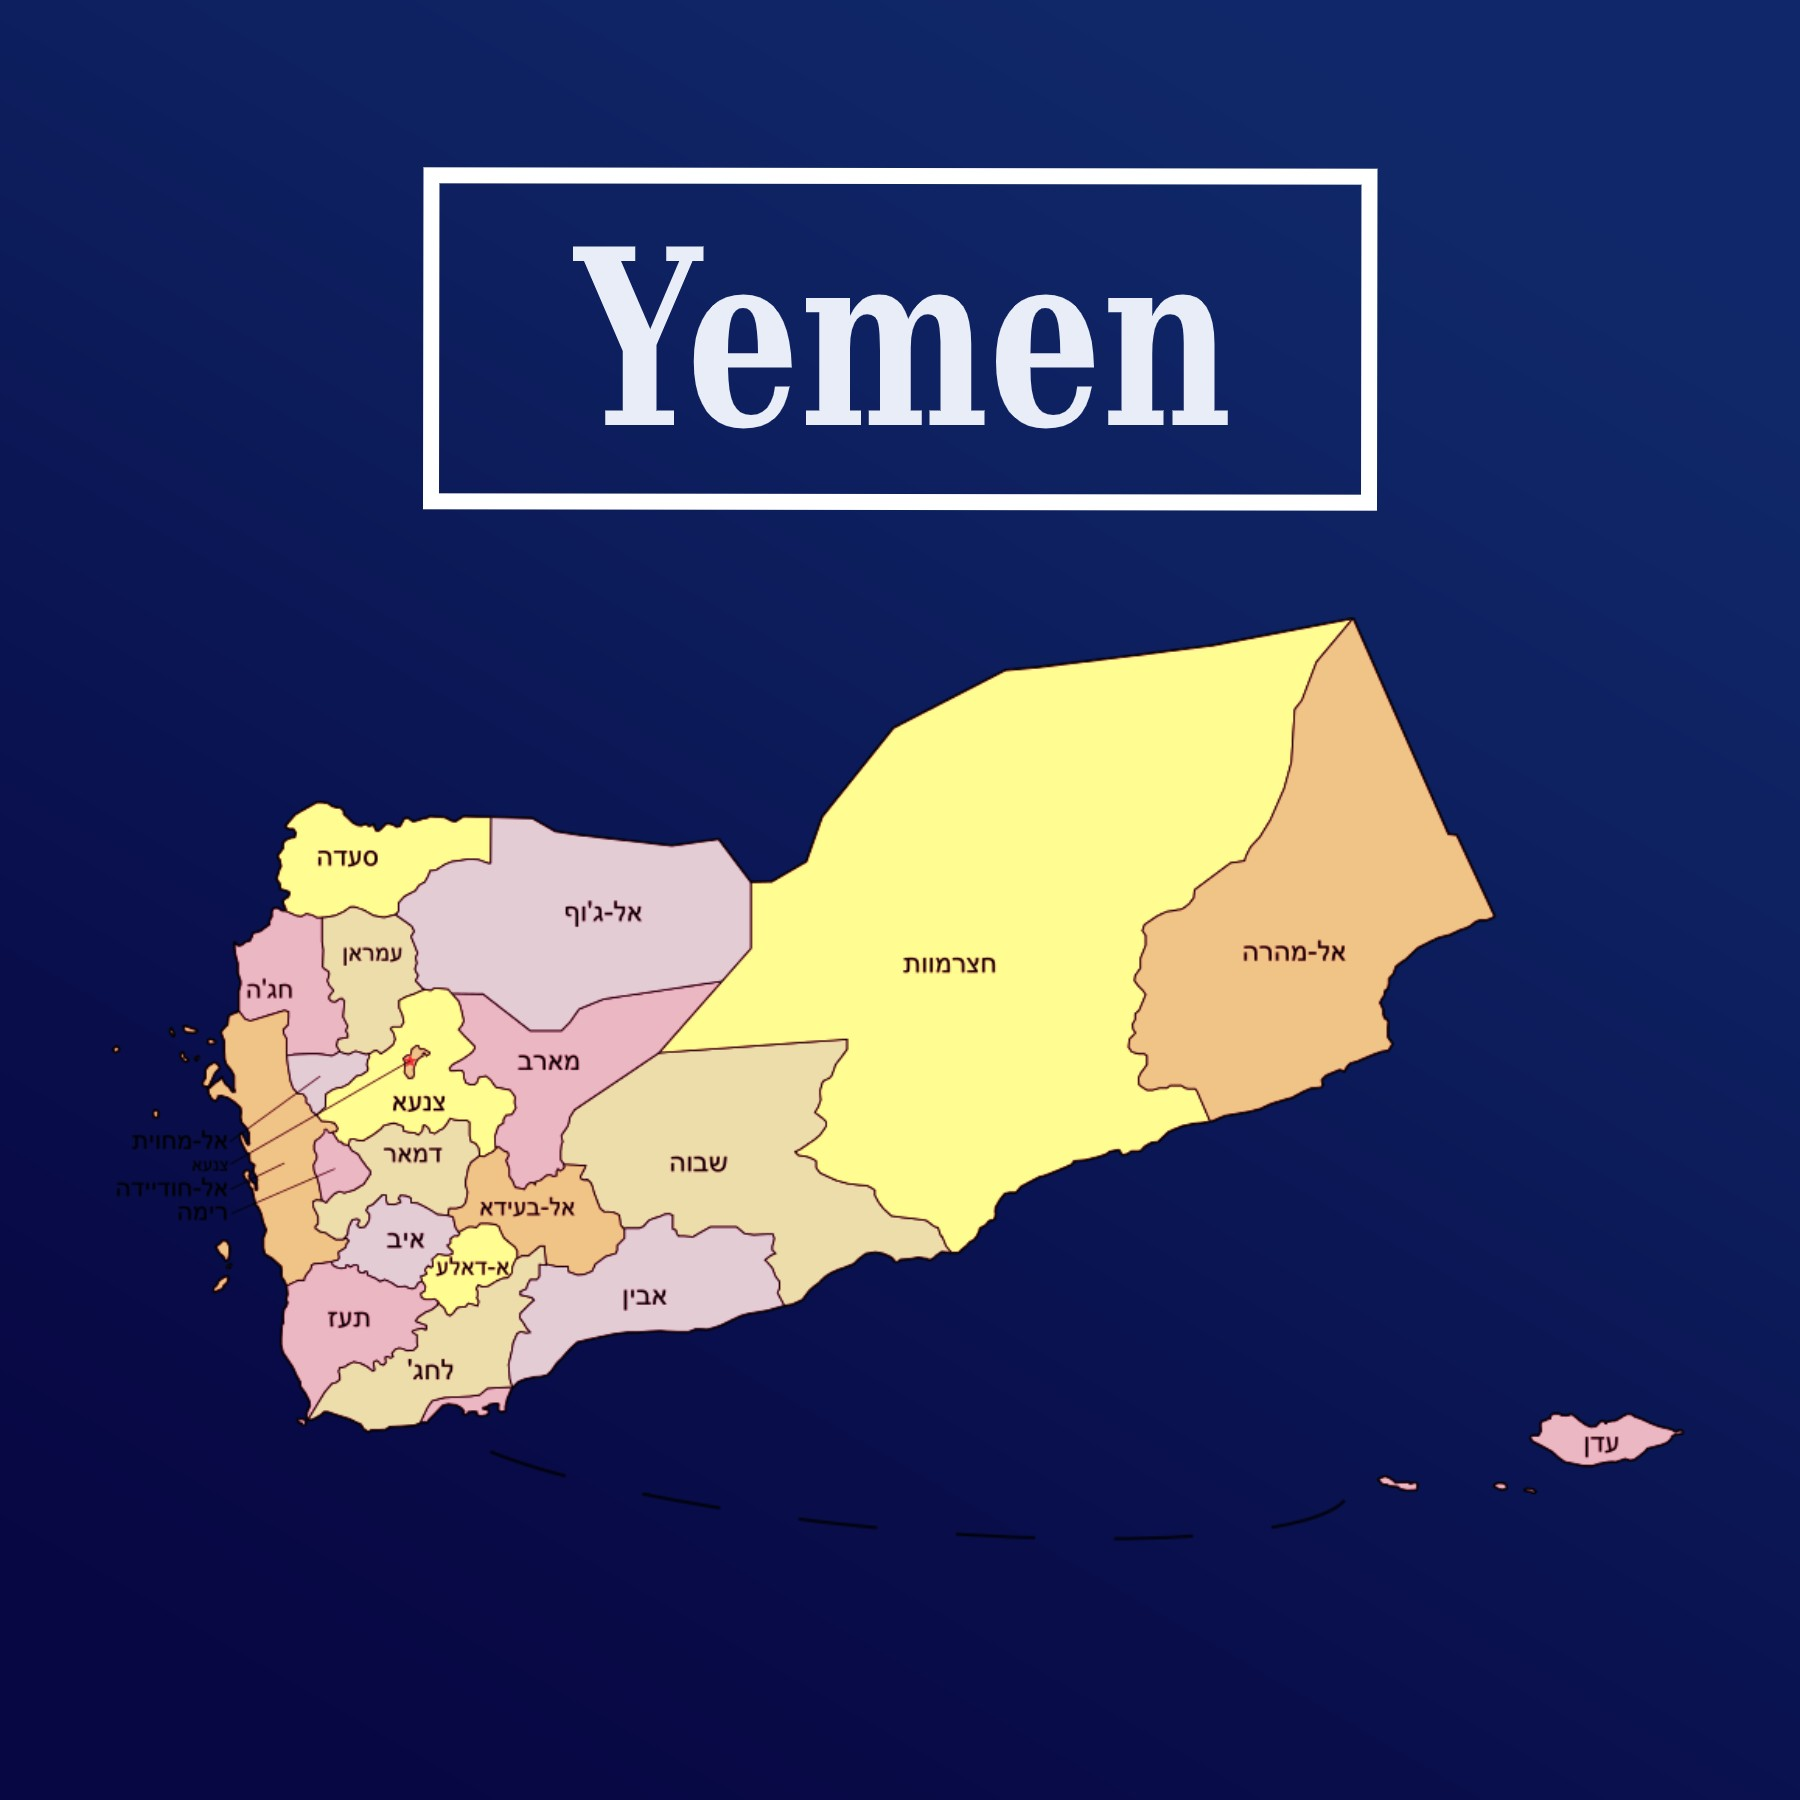 Episode 24: Elana DeLozier and a Stakeholder Analysis of Yemen